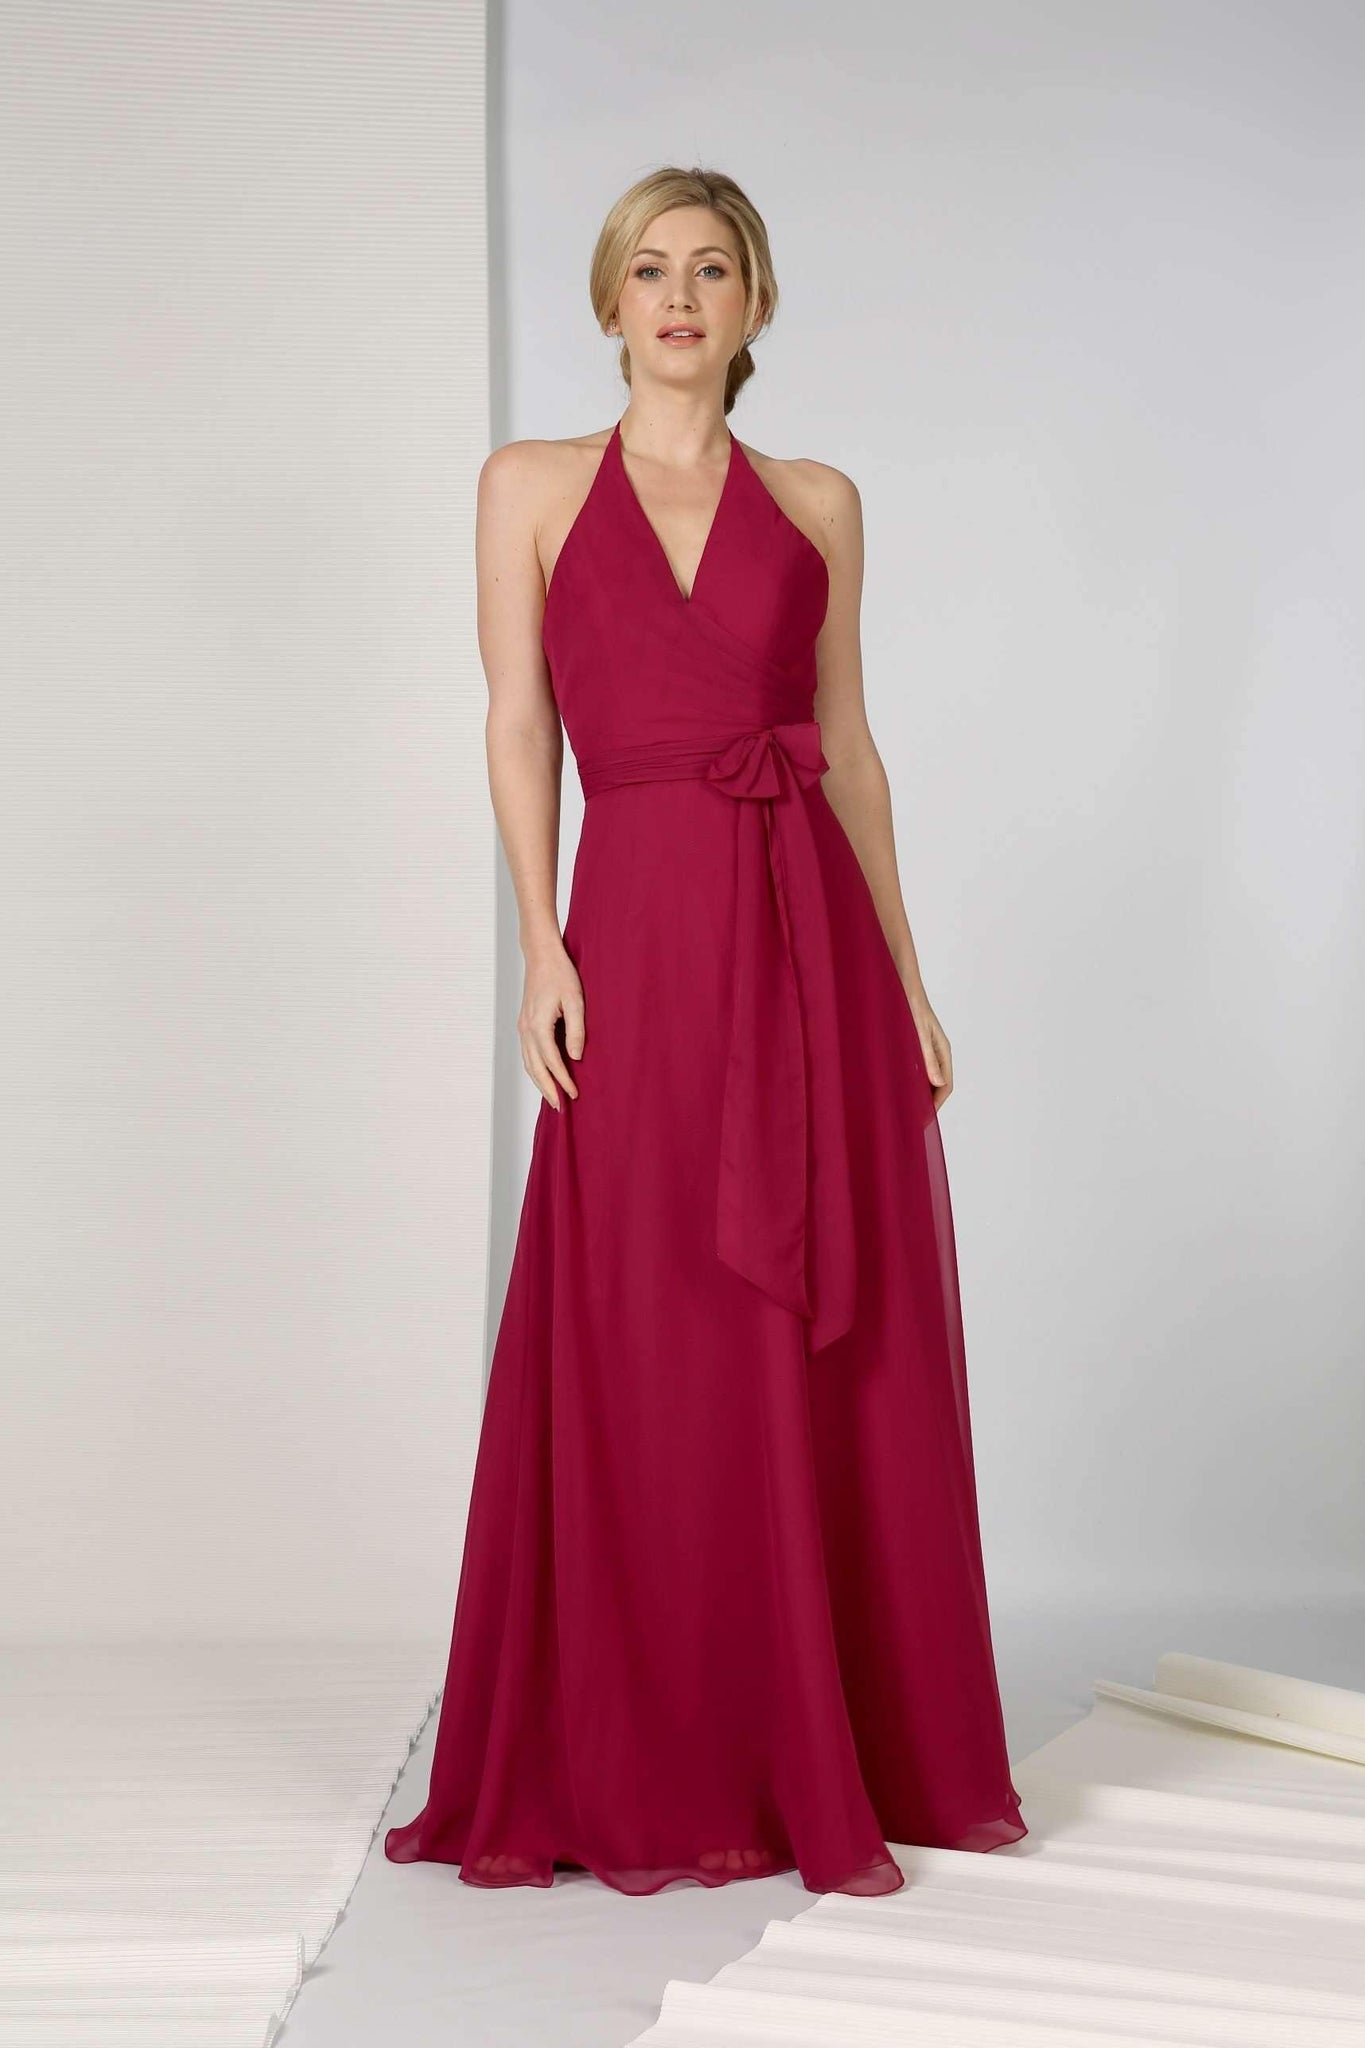 Zara Nieve Occasion - Adore Bridal and Occasion Wear